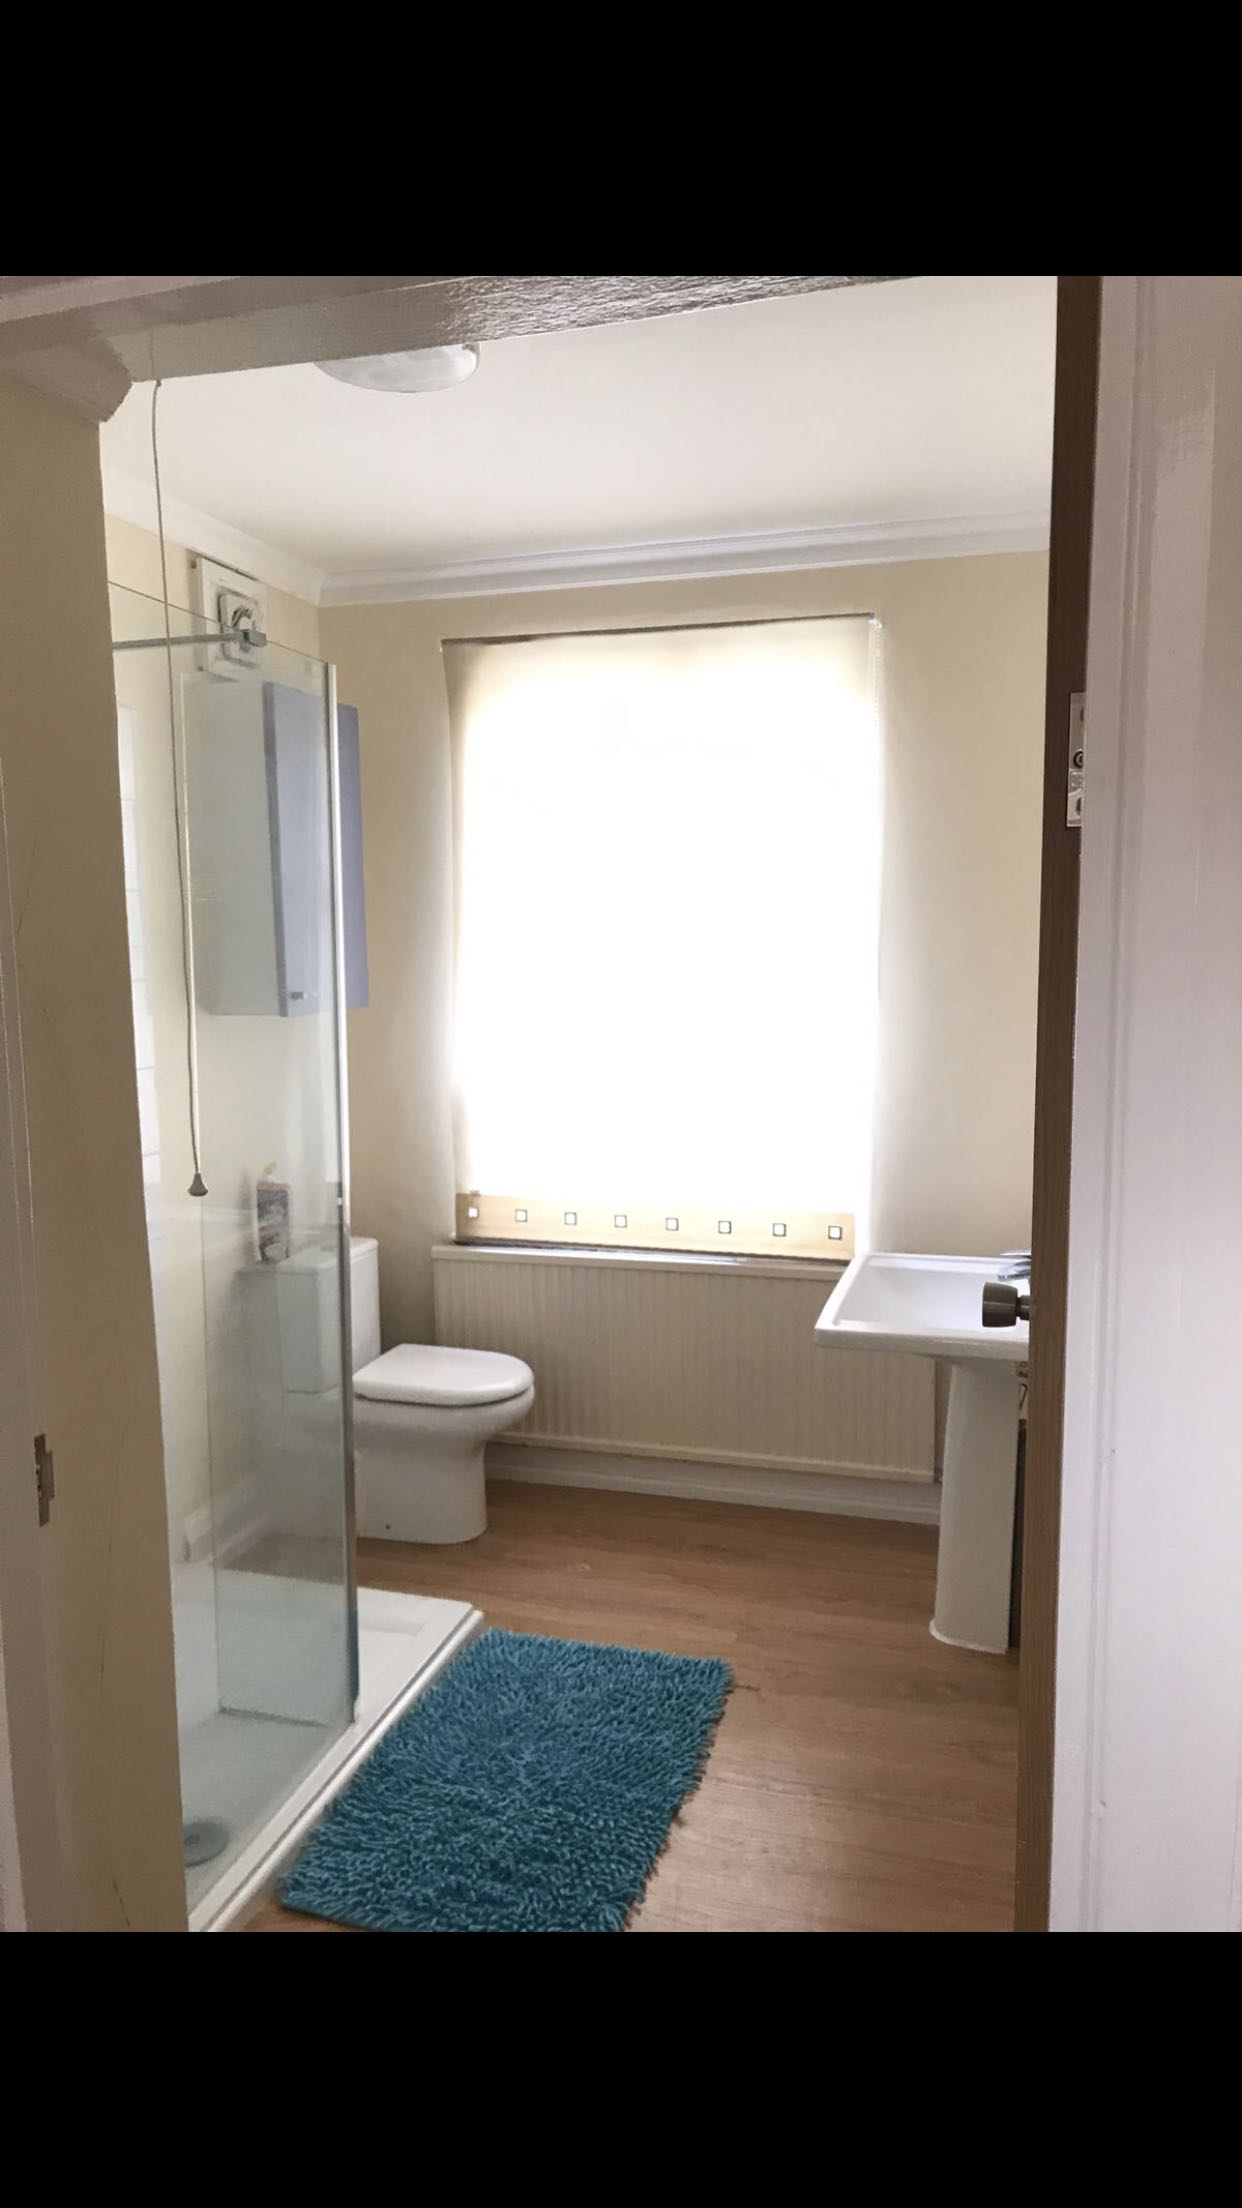 1 room in Endlebury, London, E4 7JT RoomsLocal image